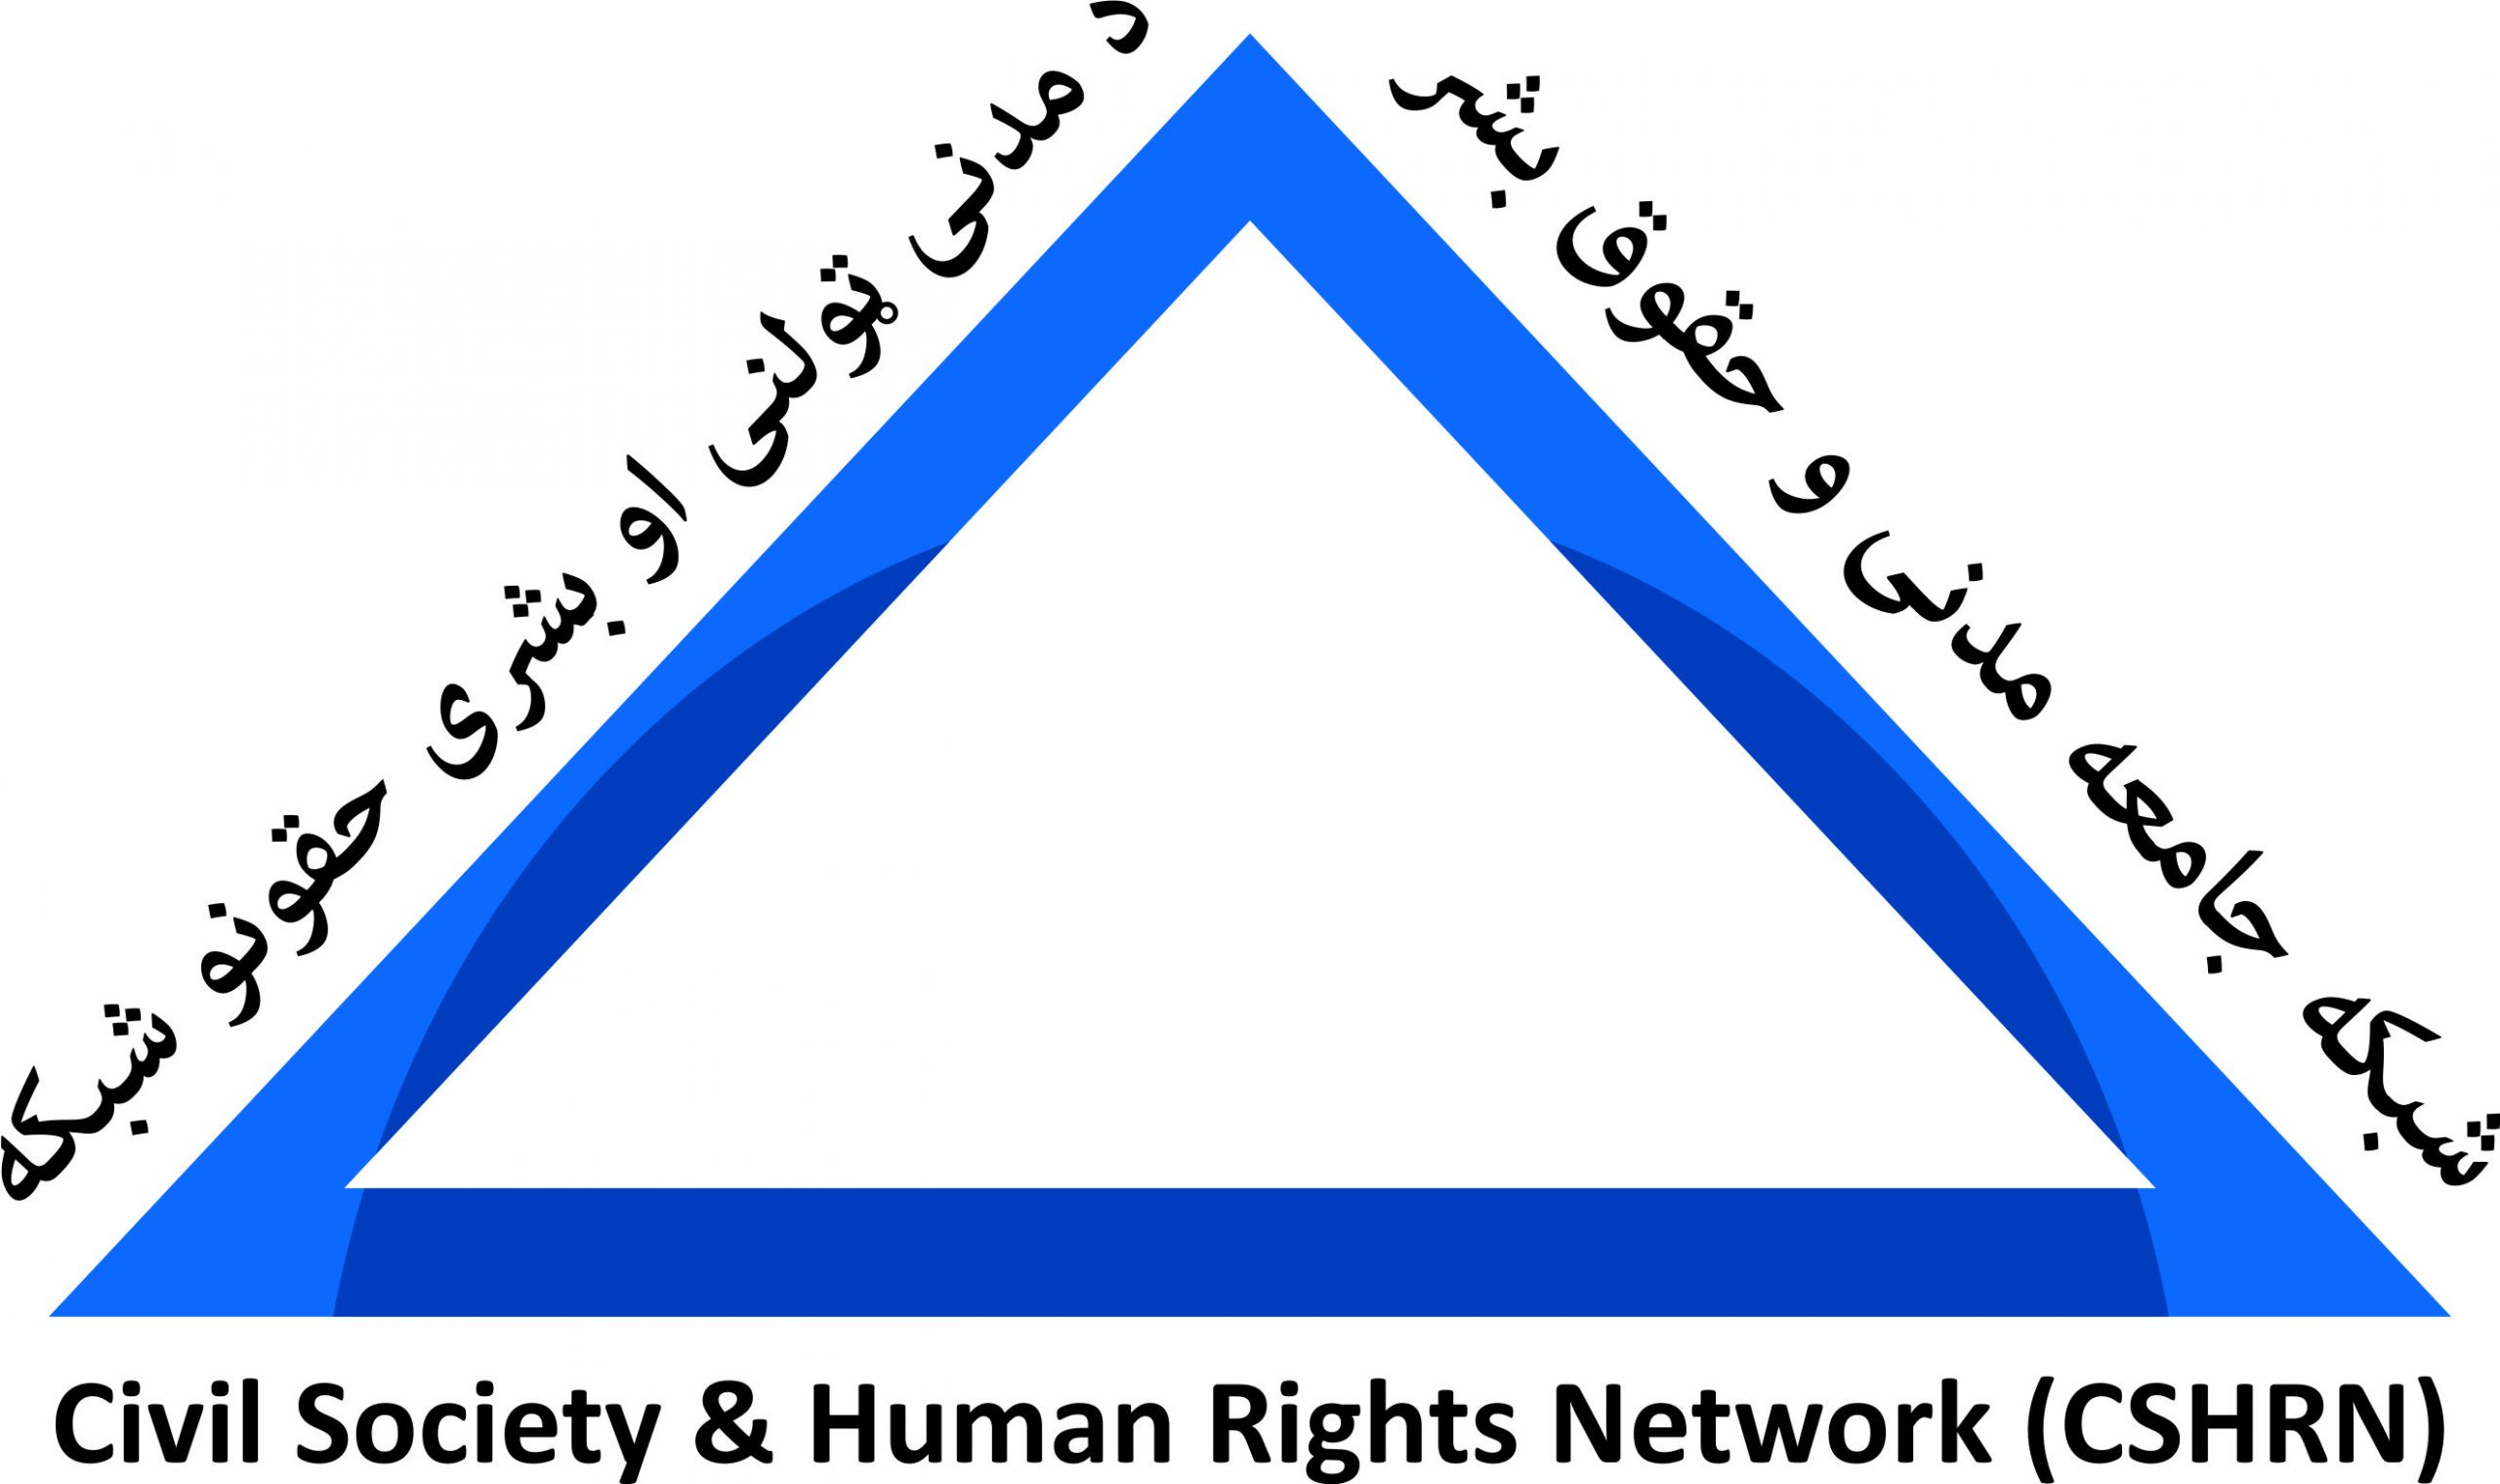 Civil Society and Human Rights Network position paper in connection with the start of intra-Afghan negotiations